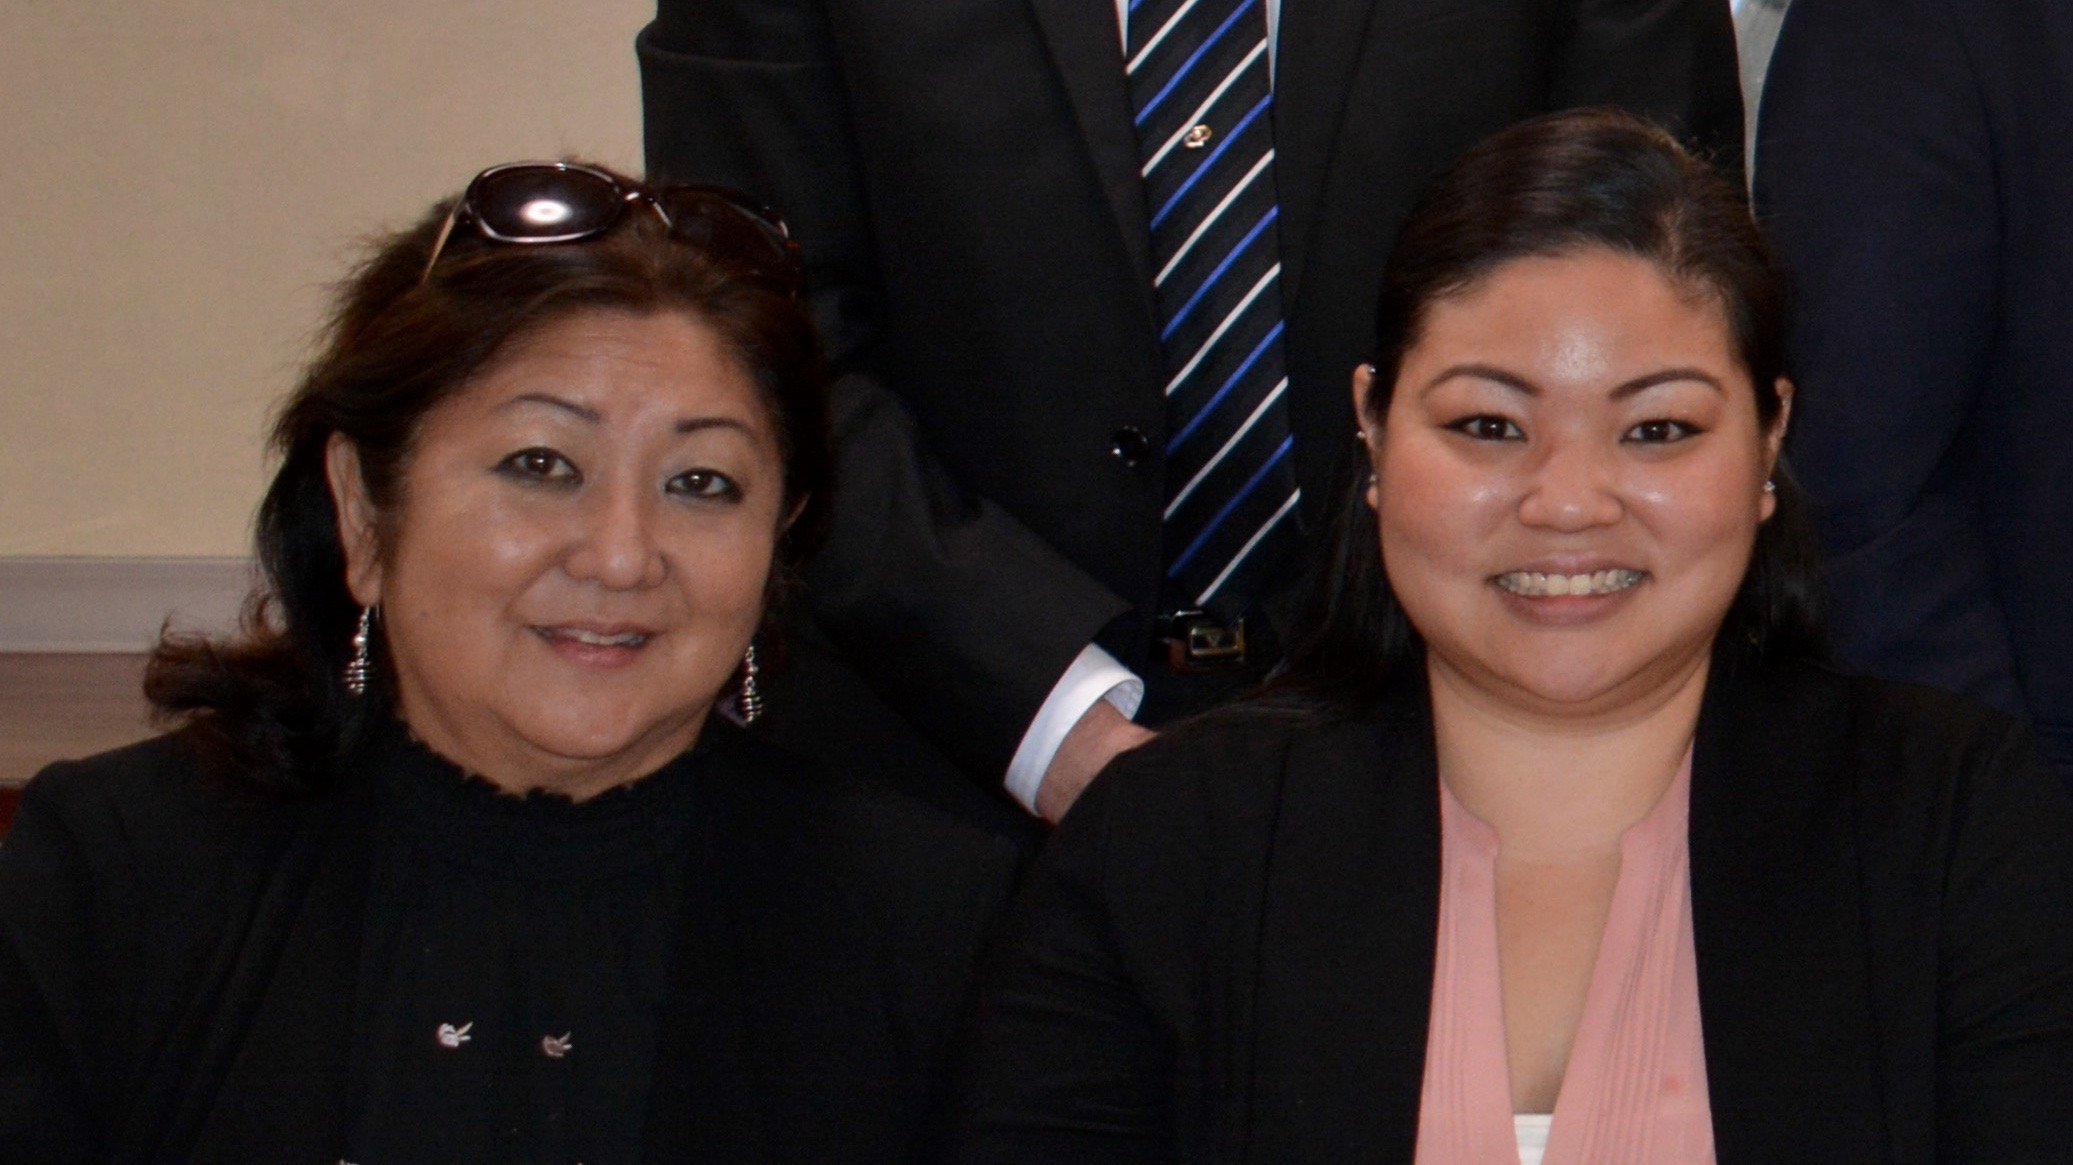 """Okinawan Festival chair Jocelyn """"Jo"""" Ige and HUOA president Courtney Takara. """"We are trying to be prudent about our expenses,"""" said Takara. (Photo courtesy Courtney Takara)"""